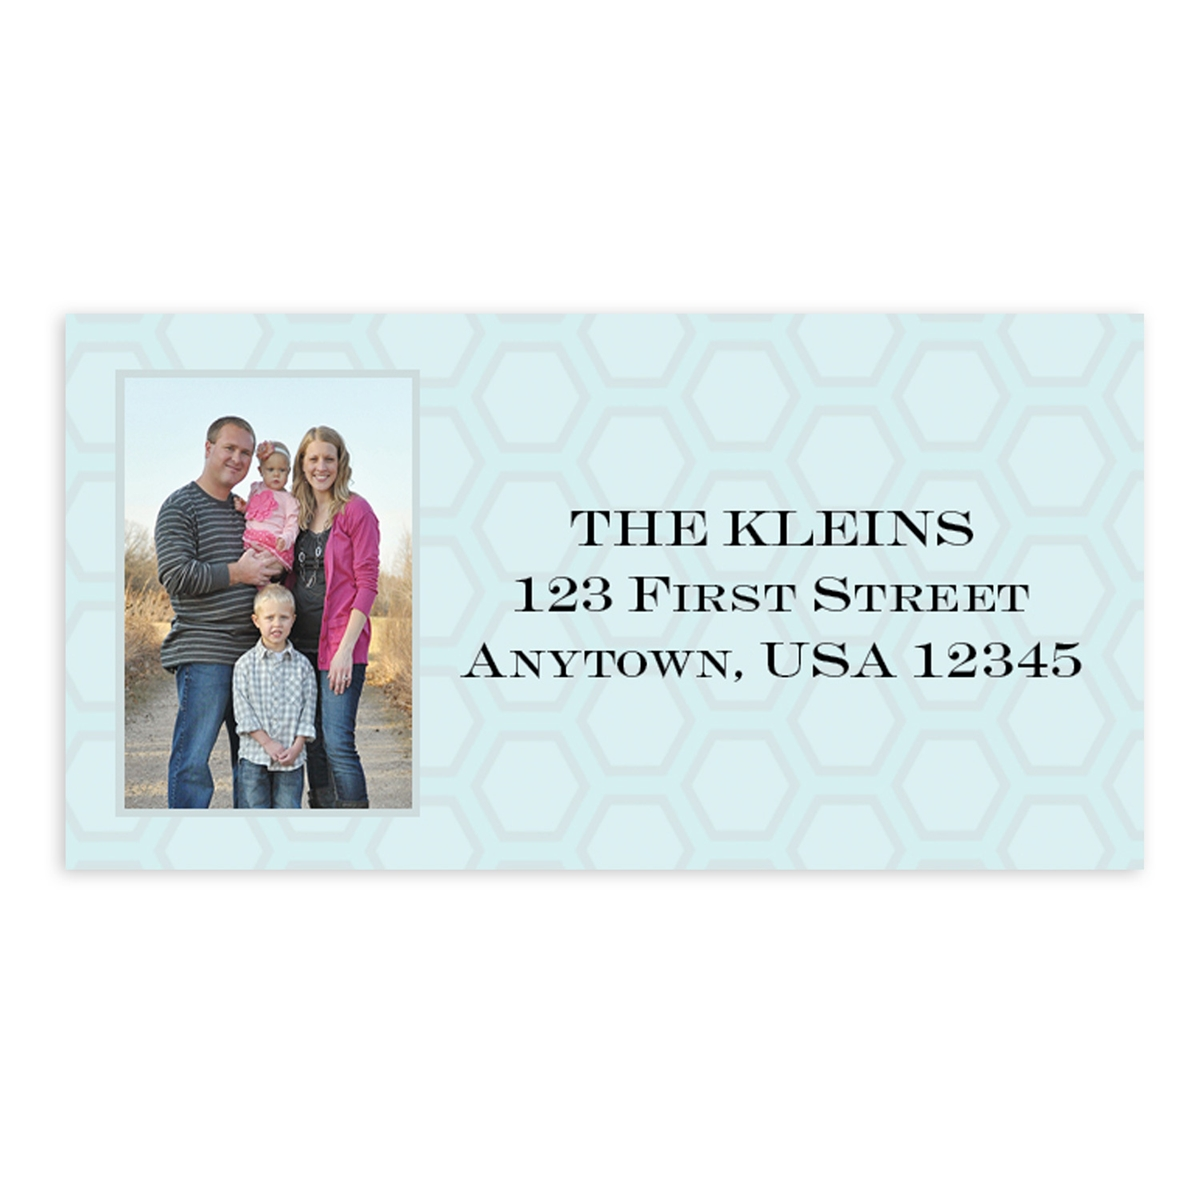 Photo Address Labels